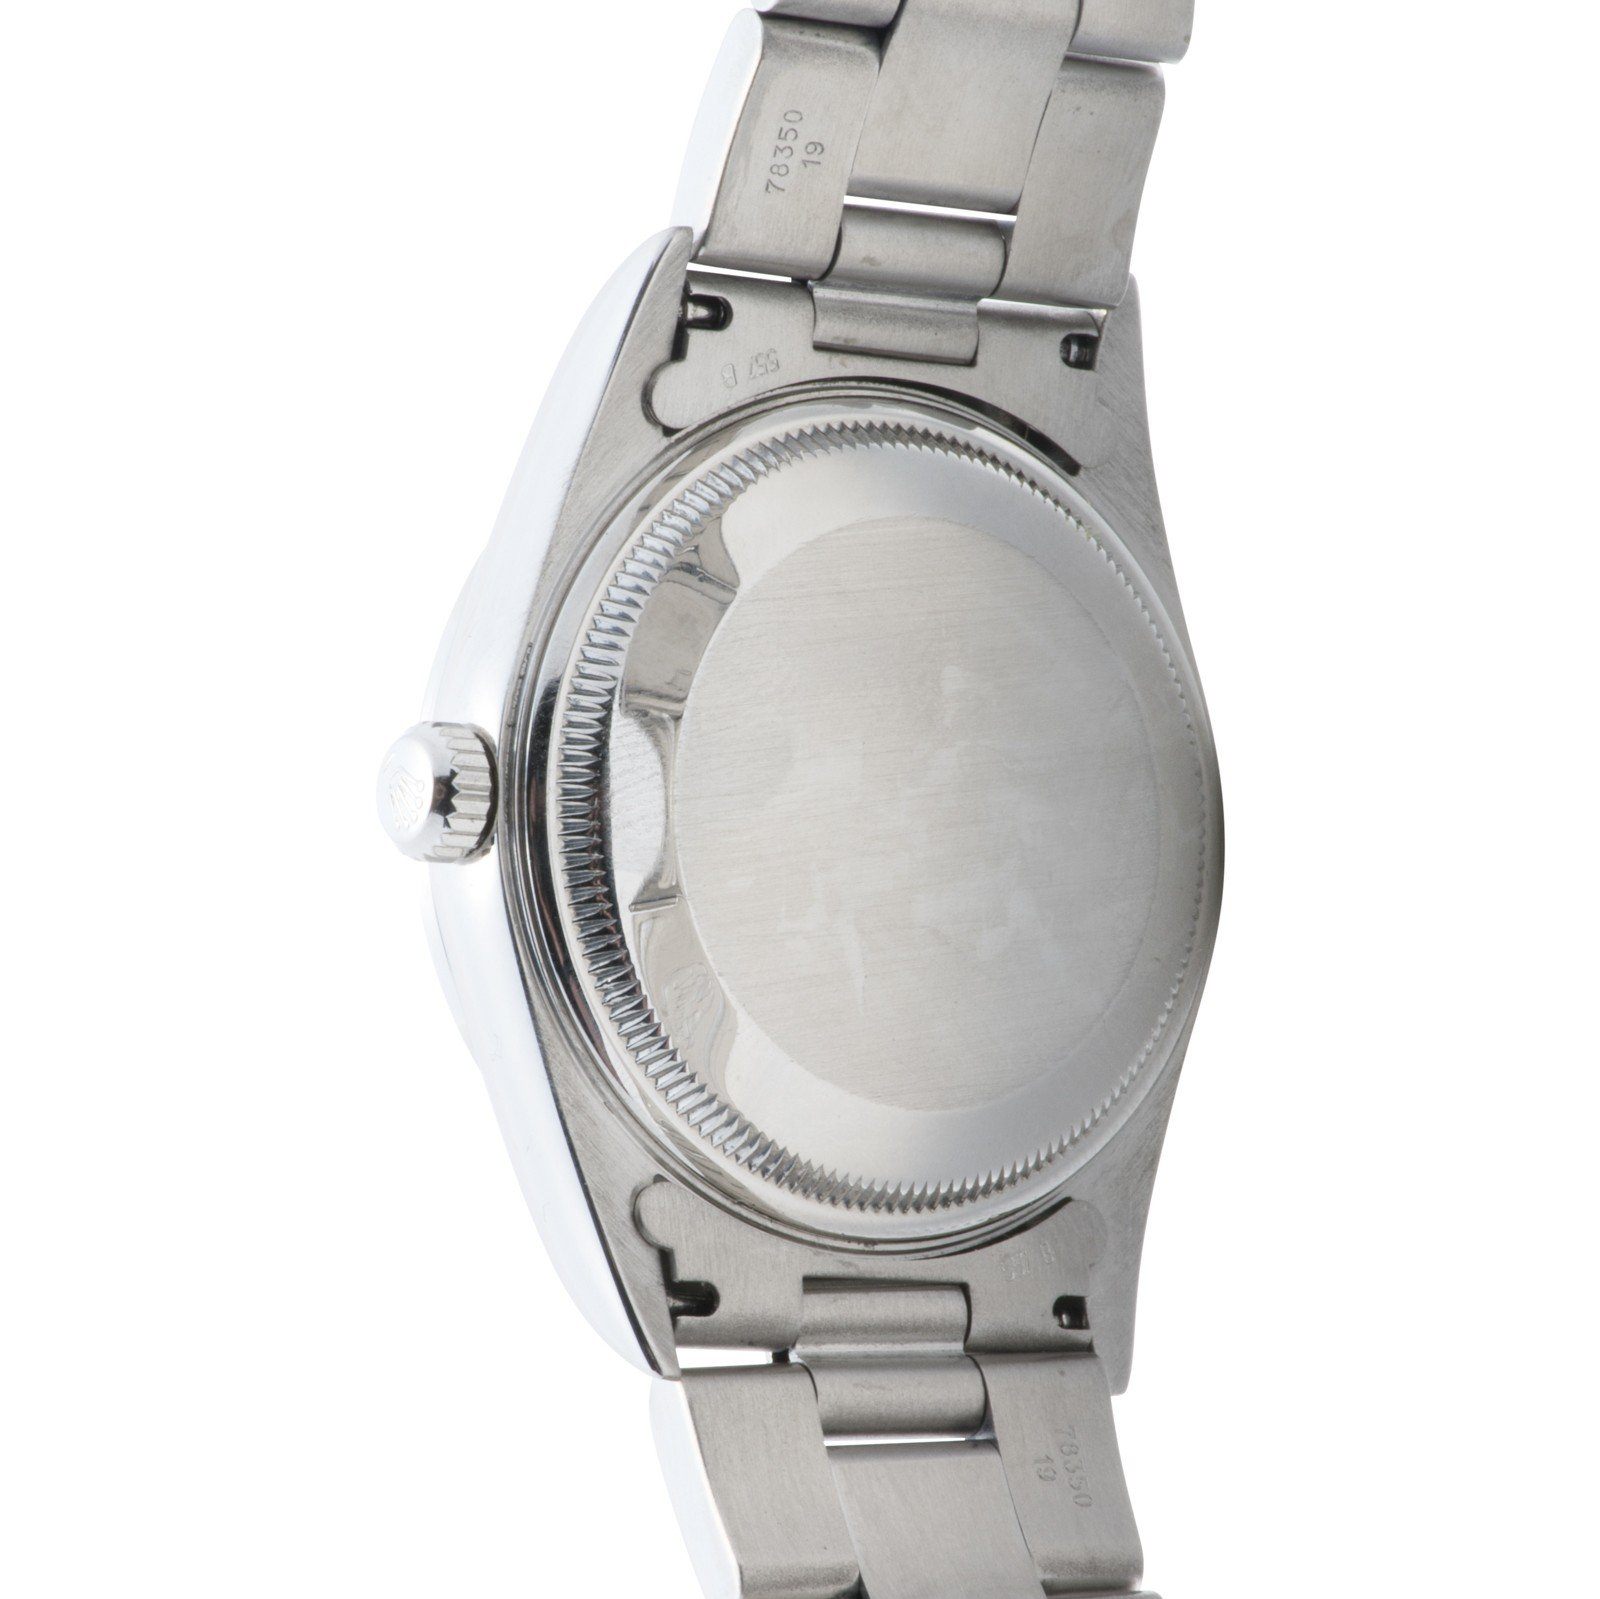 Rolex Datejust automatic-self-wind mens Watch 15200 (Certified Pre-owned) by Rolex (Image #4)